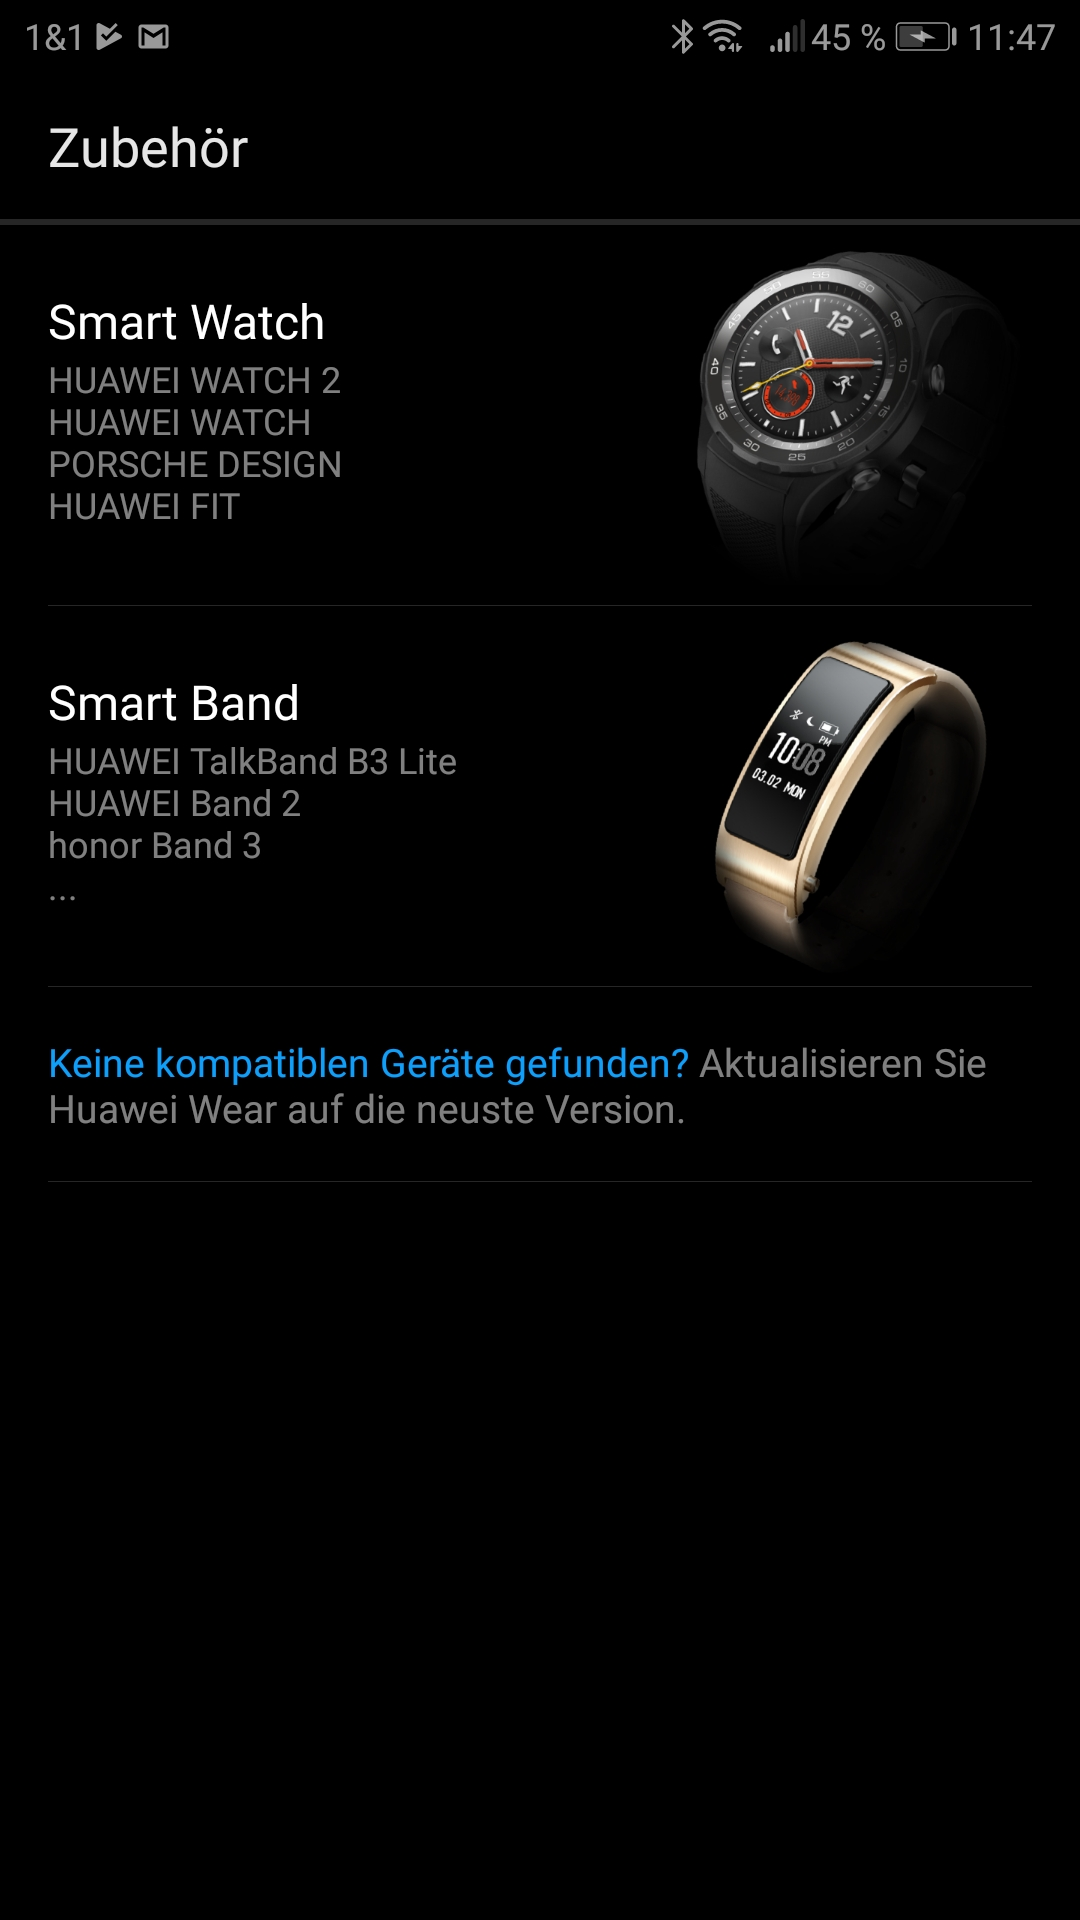 huawei watch 2 die smartwatch im test bei der stiftung. Black Bedroom Furniture Sets. Home Design Ideas